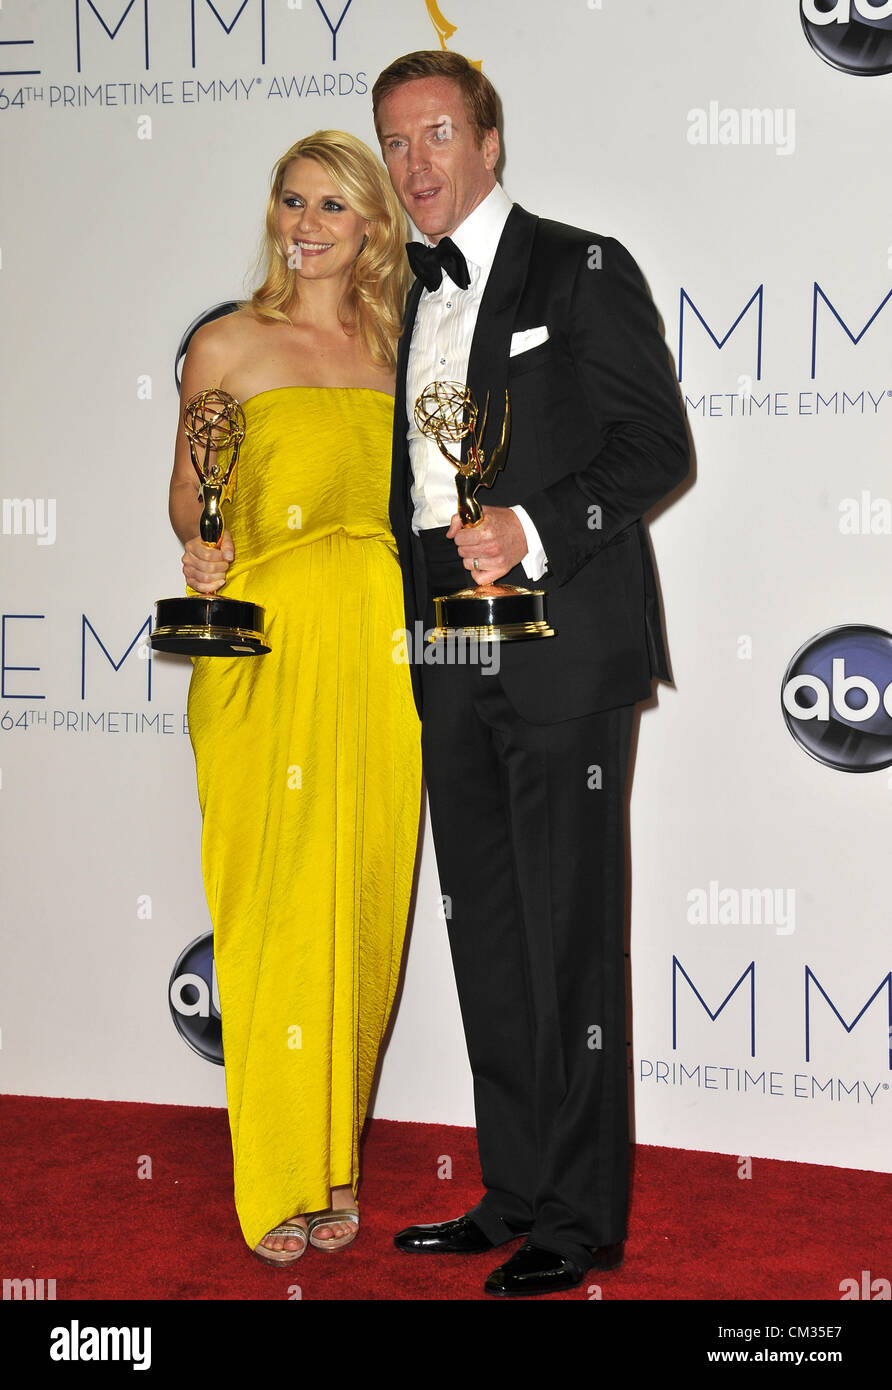 Sept. 23, 2012 - Los Angeles, California, U.S. - Pregnant actress CLAIRE DANES wearing a strapless Lanvin gown and - Stock Image